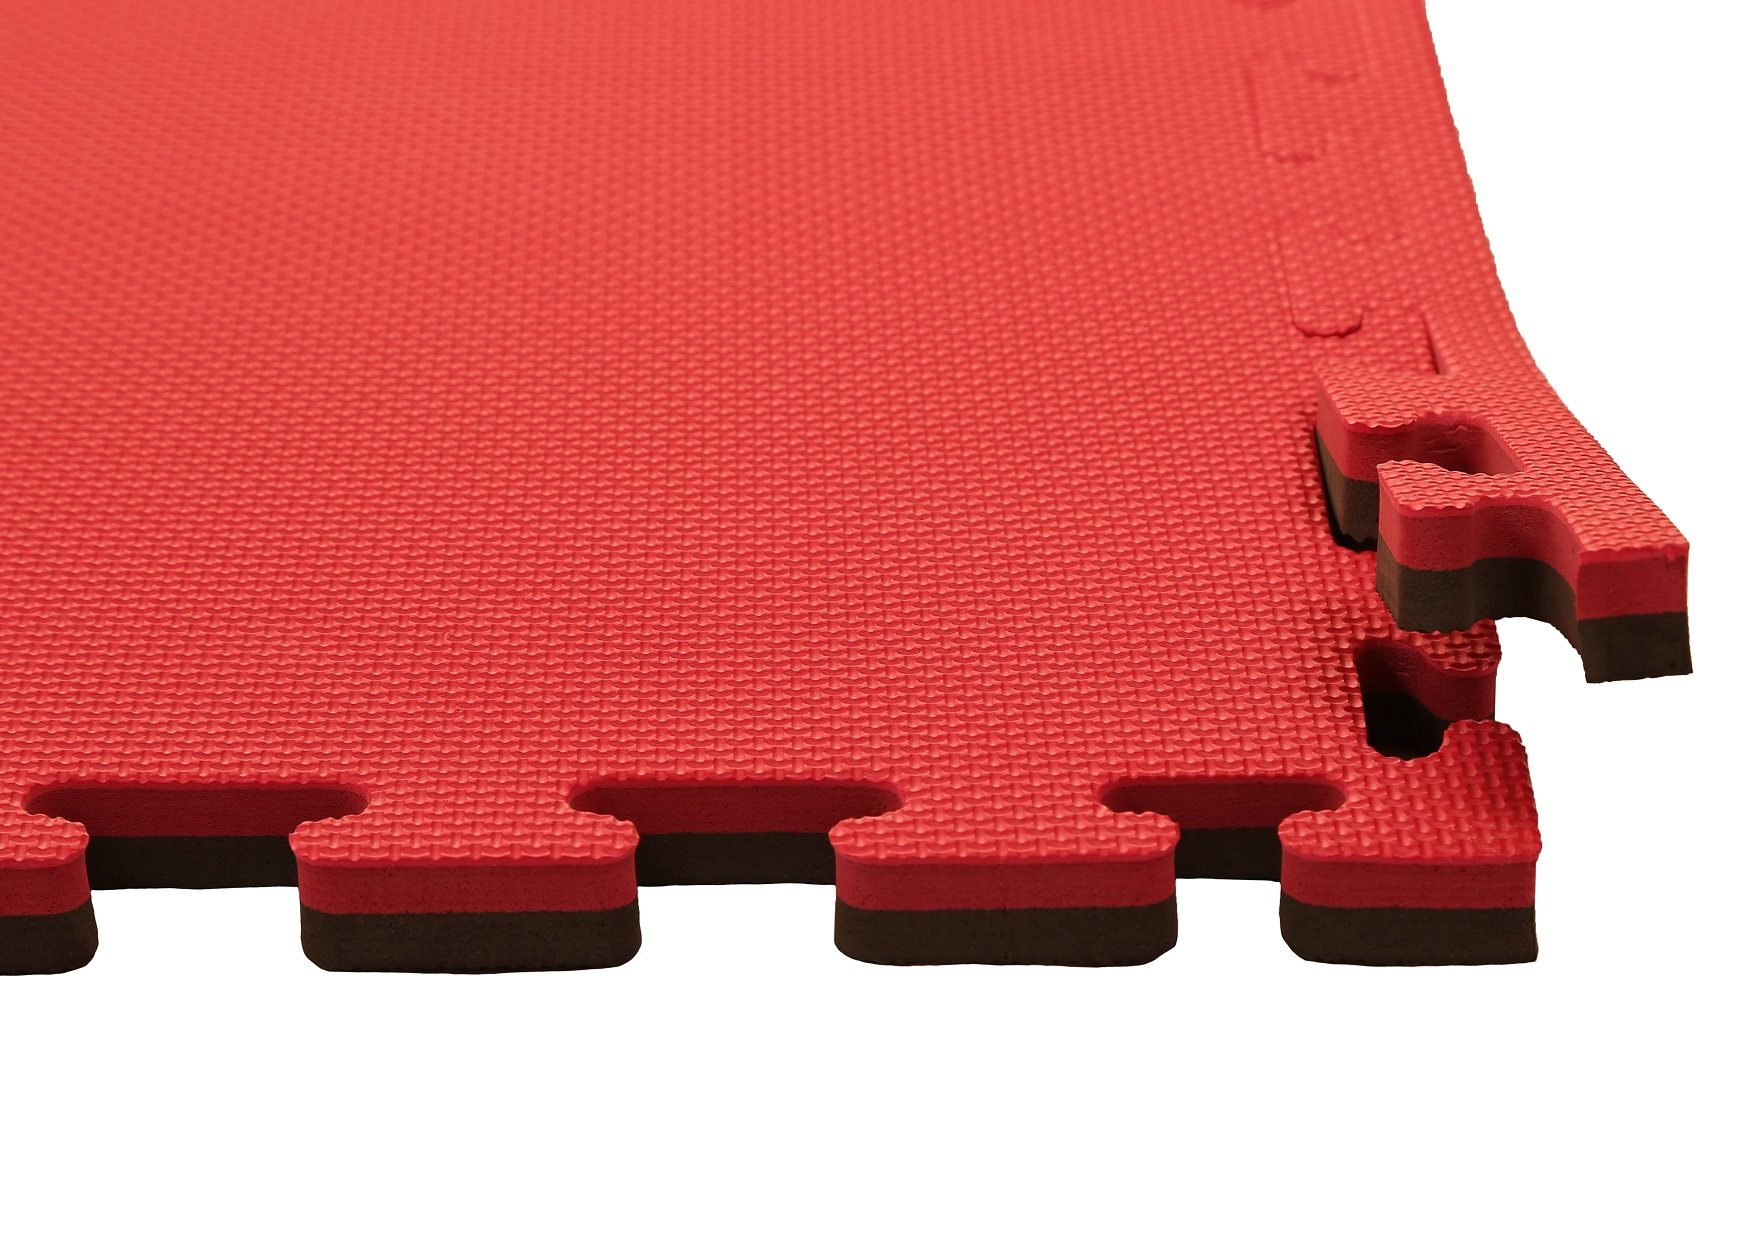 20mm Martial Arts Jigsaw Mats Great Bulk Pricing Offer